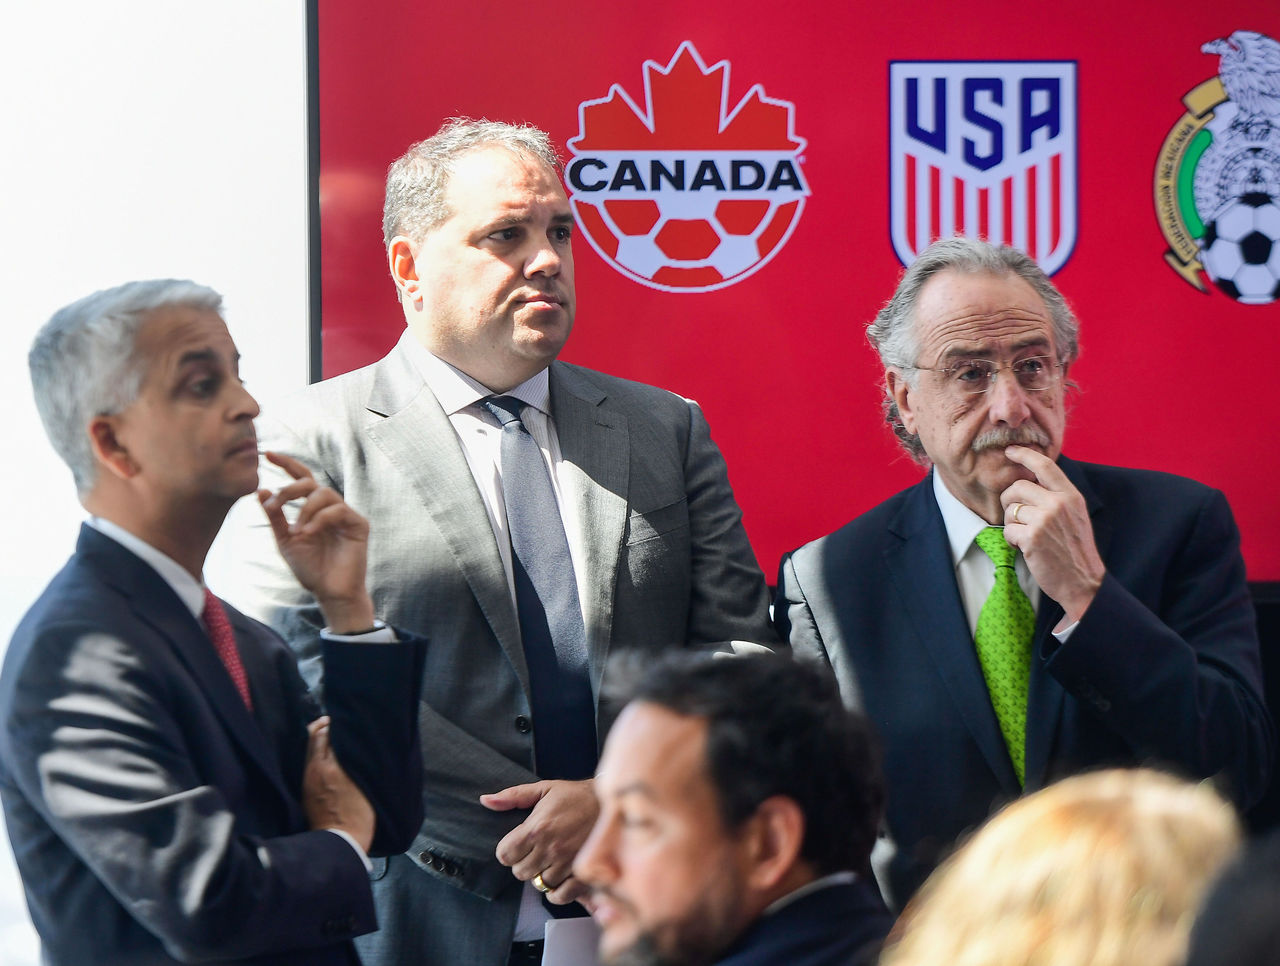 Cropped 2017 04 10t195842z 1181913086 nocid rtrmadp 3 soccer us soccer press conference